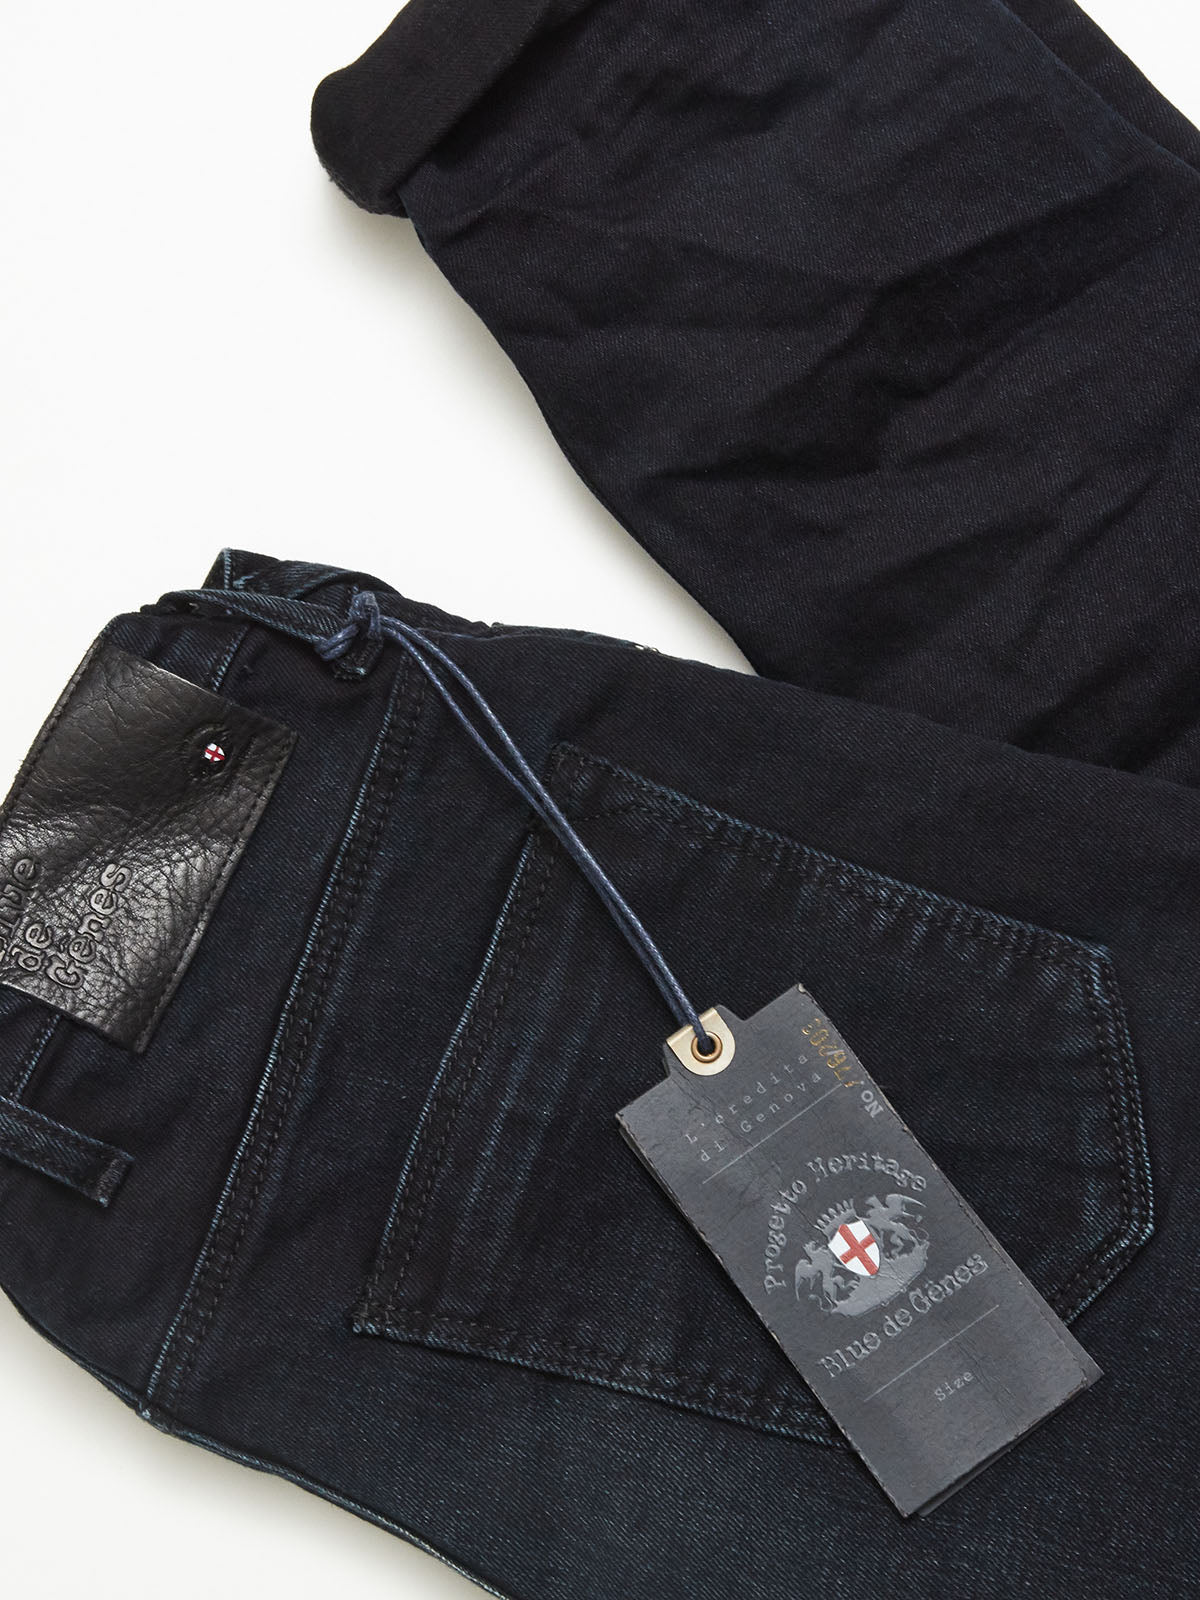 Repi BB Dark Jeans